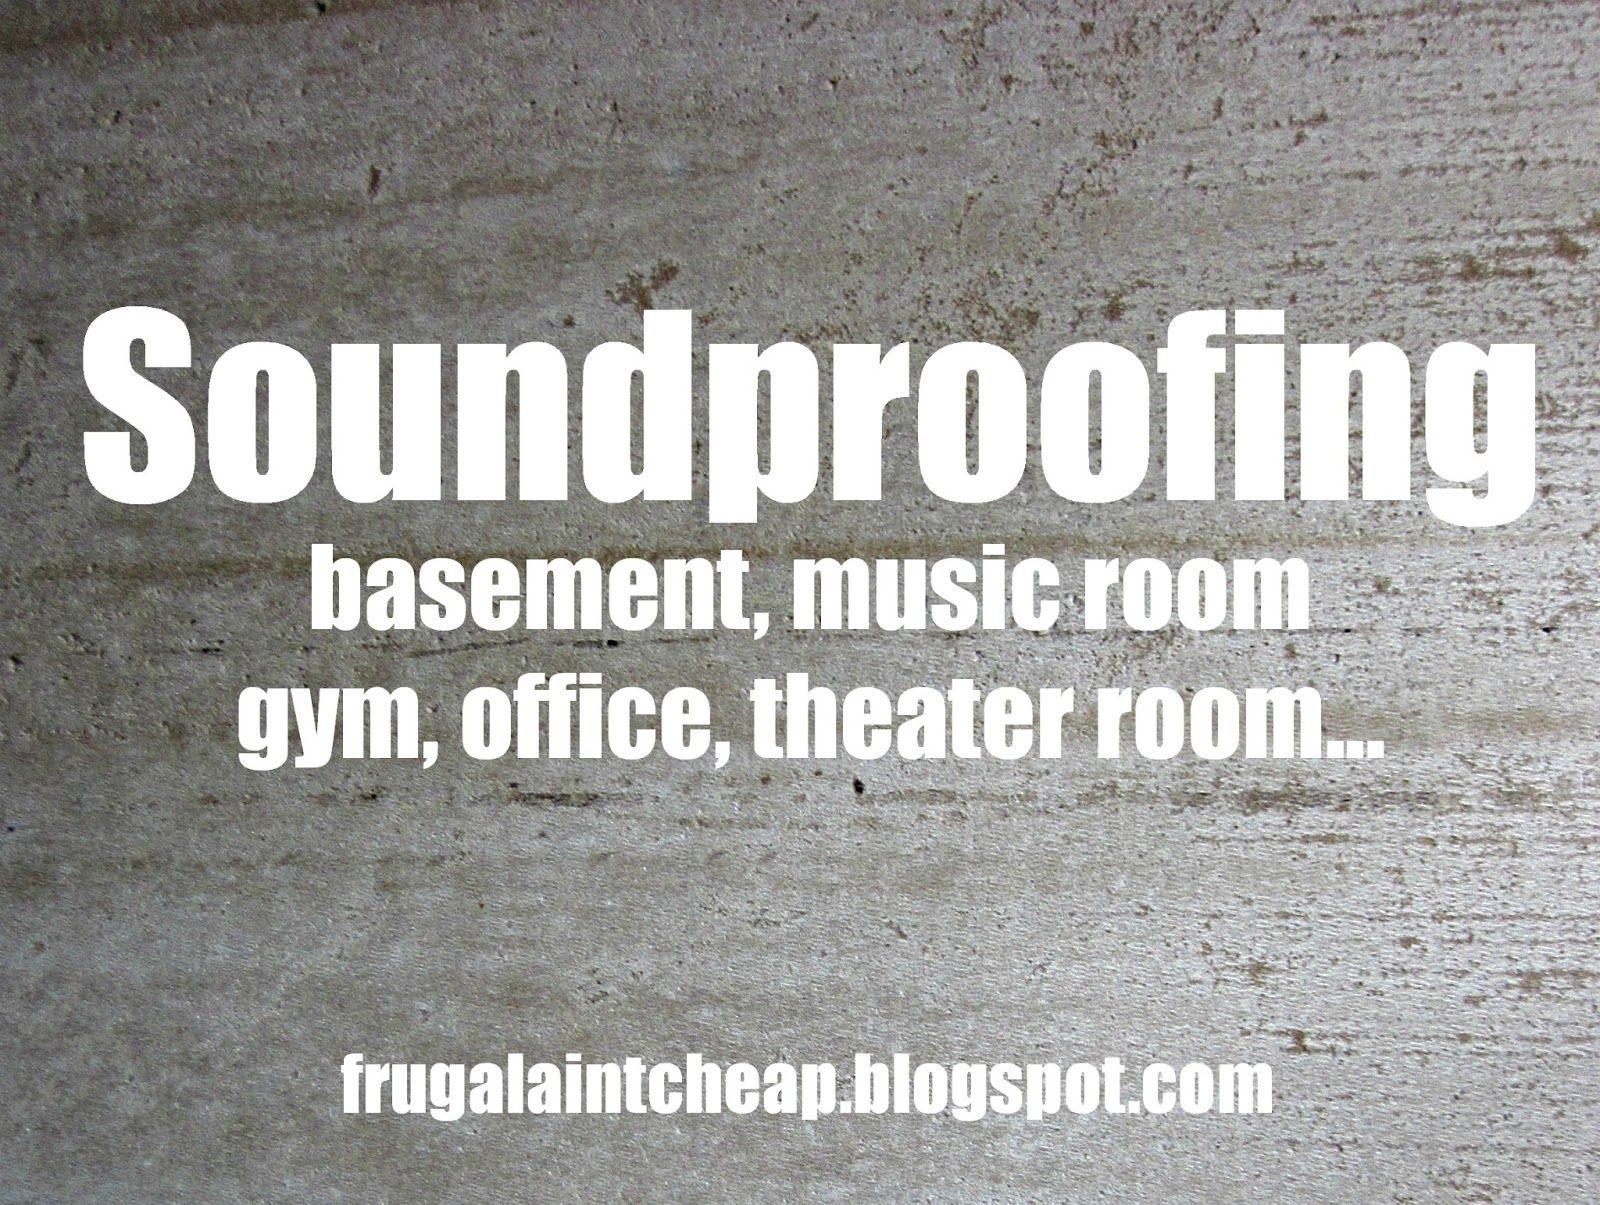 ceiling a ceilings soundproof youtube soundproofing basement watch how to